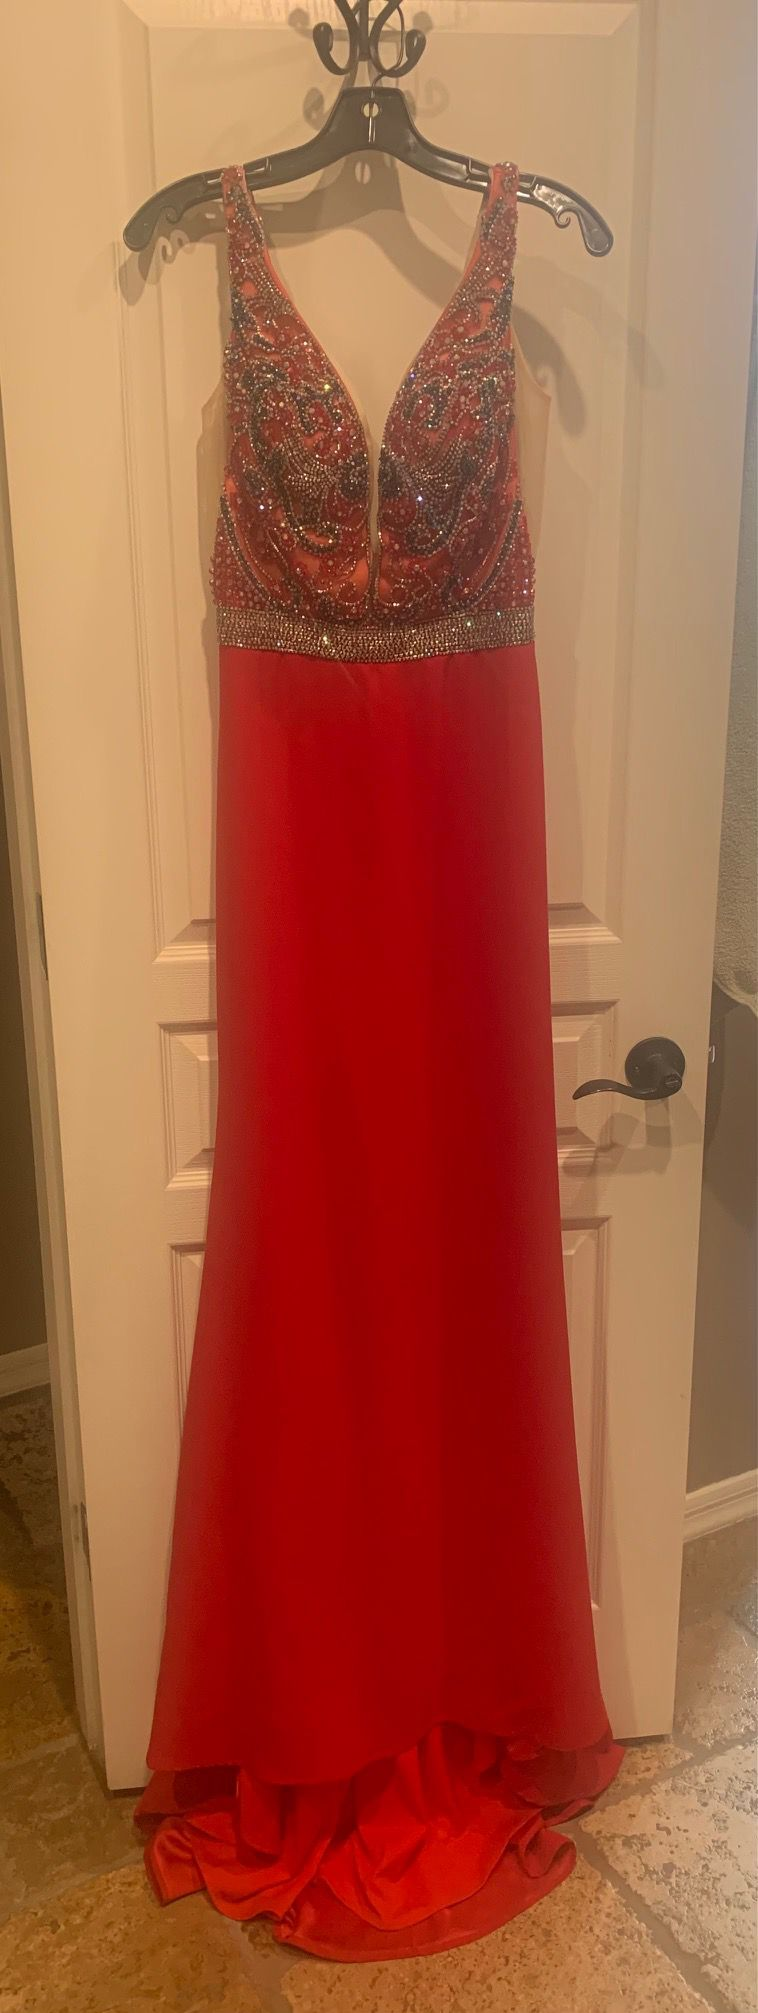 Style 9932 Vienna Prom Red Size 4 Beaded Top Pattern Pageant Mermaid Straight Dress on Queenly